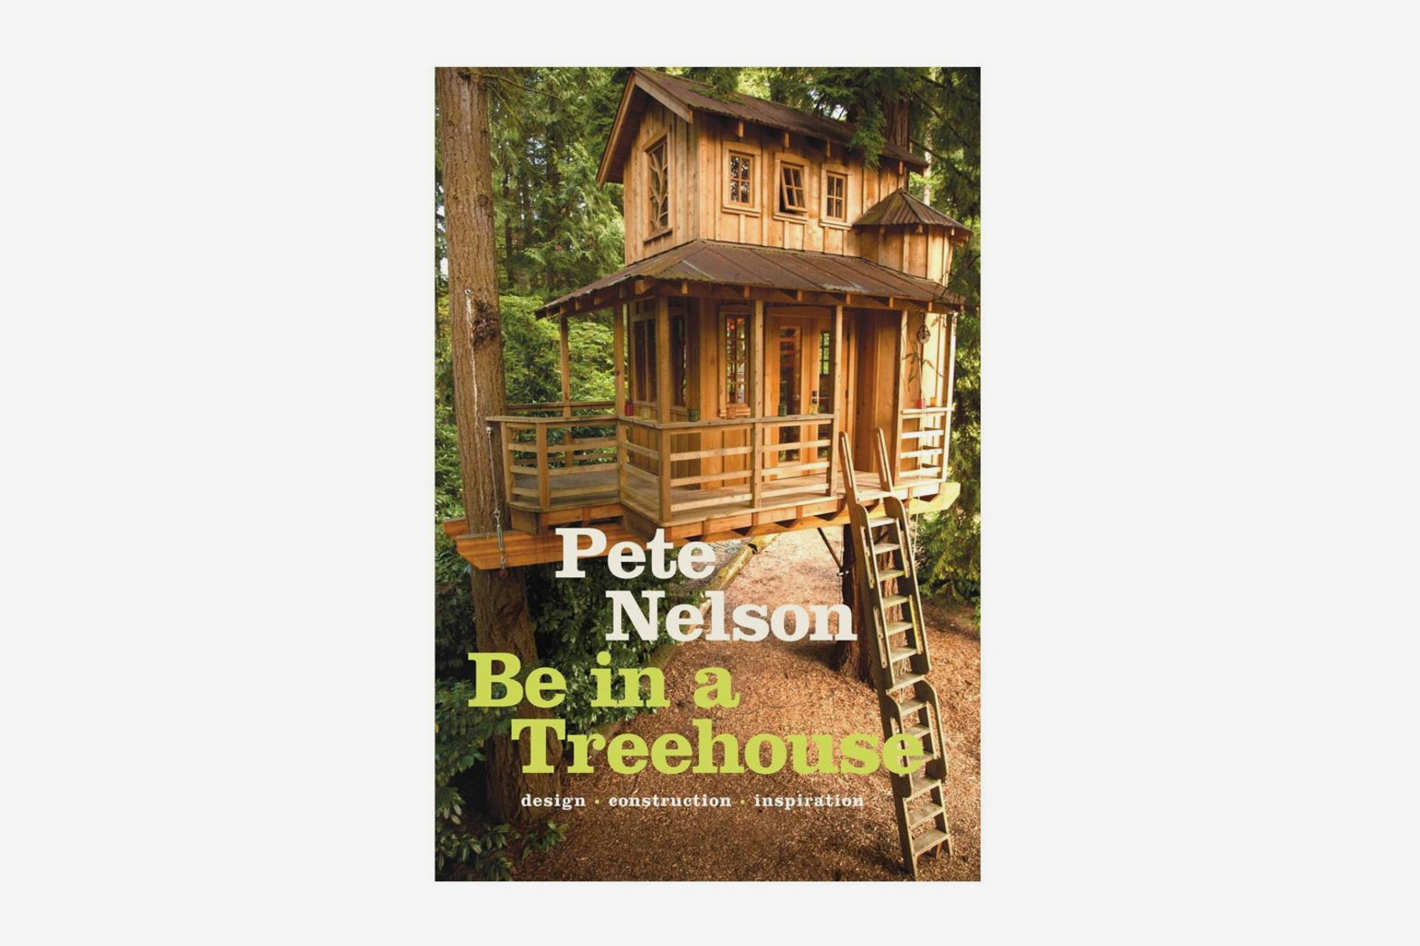 <em>Be in a Treehouse: Design / Construction / Inspiration</em>, by Pete Nelson